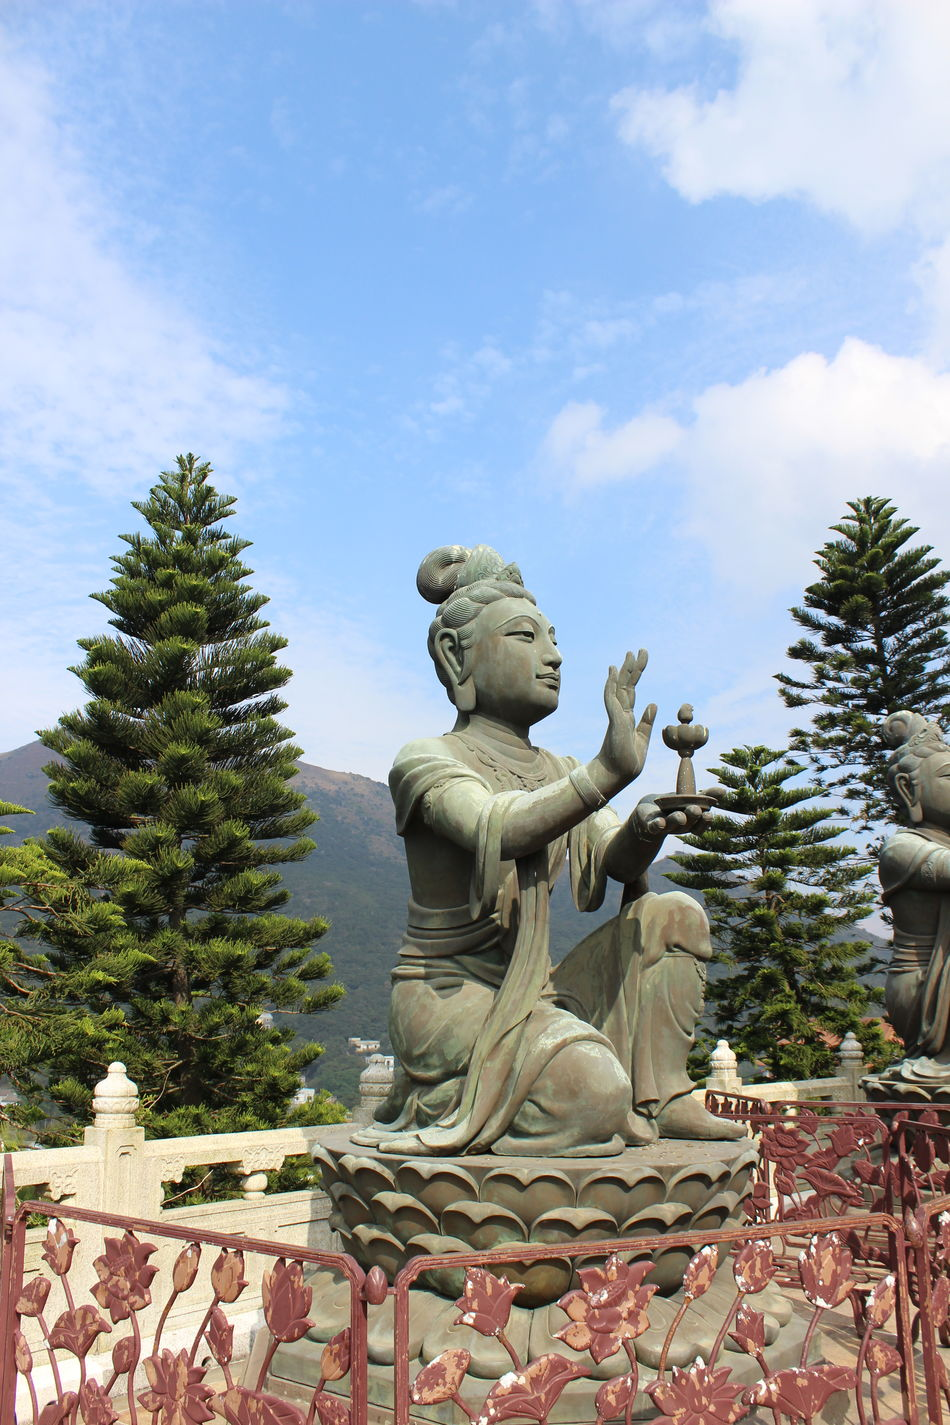 Statue Religion Art And Craft Tree Sculpture No People Cultures Tranquility Place Of Worship Outdoors Day Tian Tan Buddha (Giant Buddha) 天壇大佛 Beauty In Nature Architecture HongKong Travel Destinations Travel Photography Statue Cloud - Sky Blue